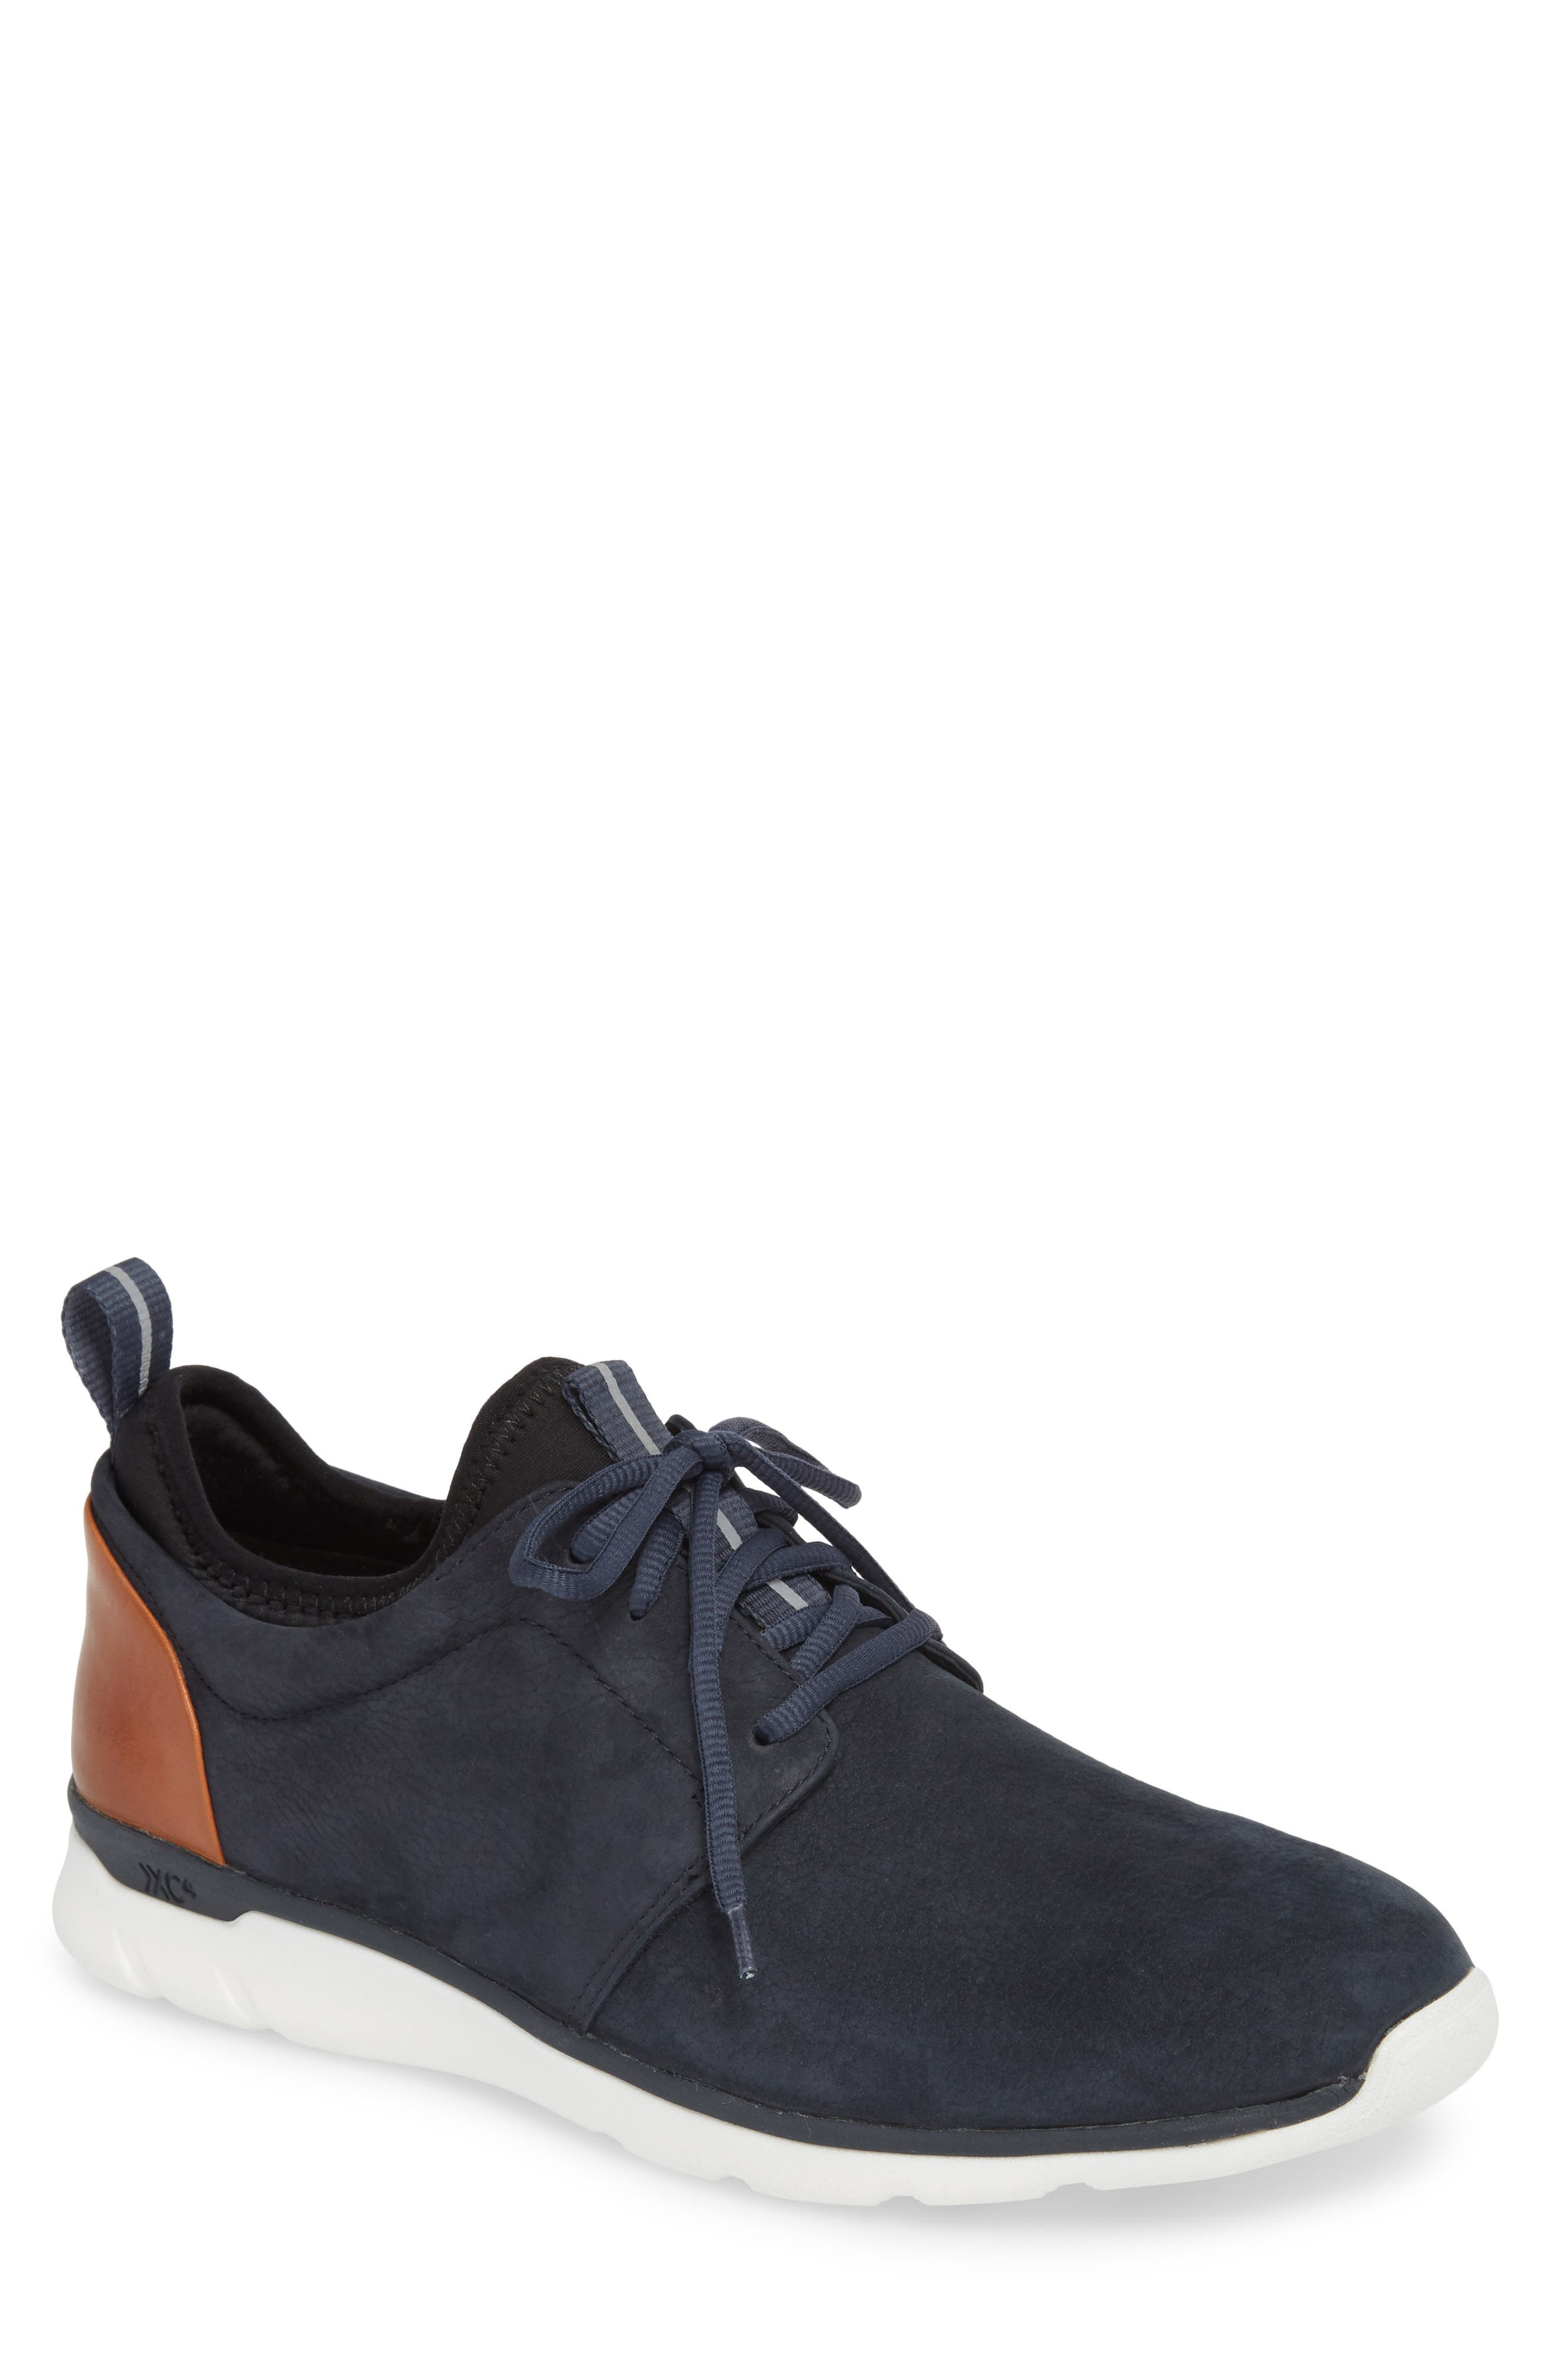 Prentiss XC4<sup>®</sup> Waterproof Low Top Sneaker,                             Main thumbnail 1, color,                             NAVY NUBUCK